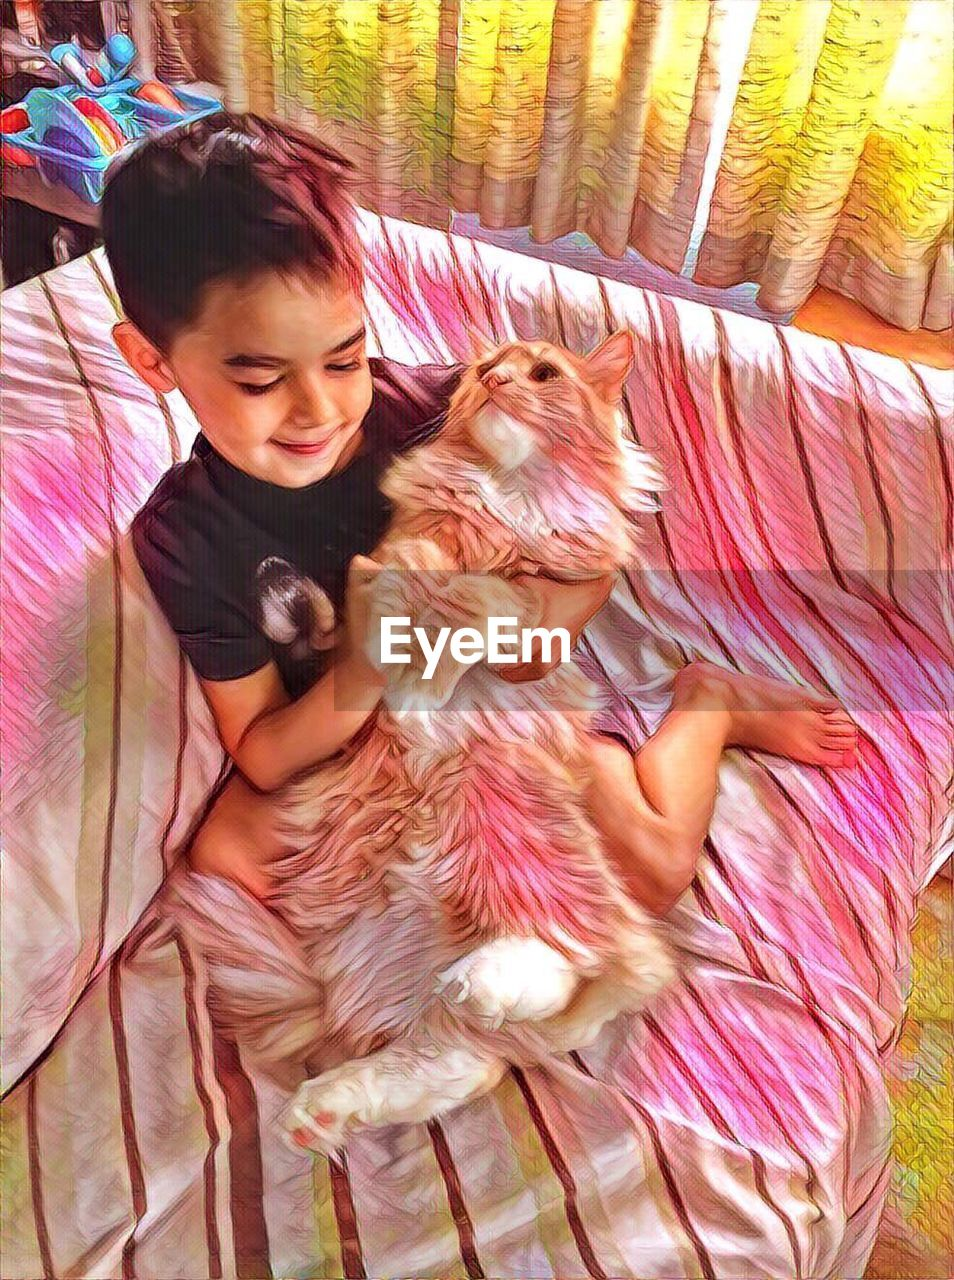 real people, bed, one person, dog, lifestyles, pets, domestic animals, childhood, home interior, cute, leisure activity, casual clothing, bedroom, indoors, animal themes, mammal, one animal, happiness, girls, playing, relaxation, smiling, pillow, day, young adult, people